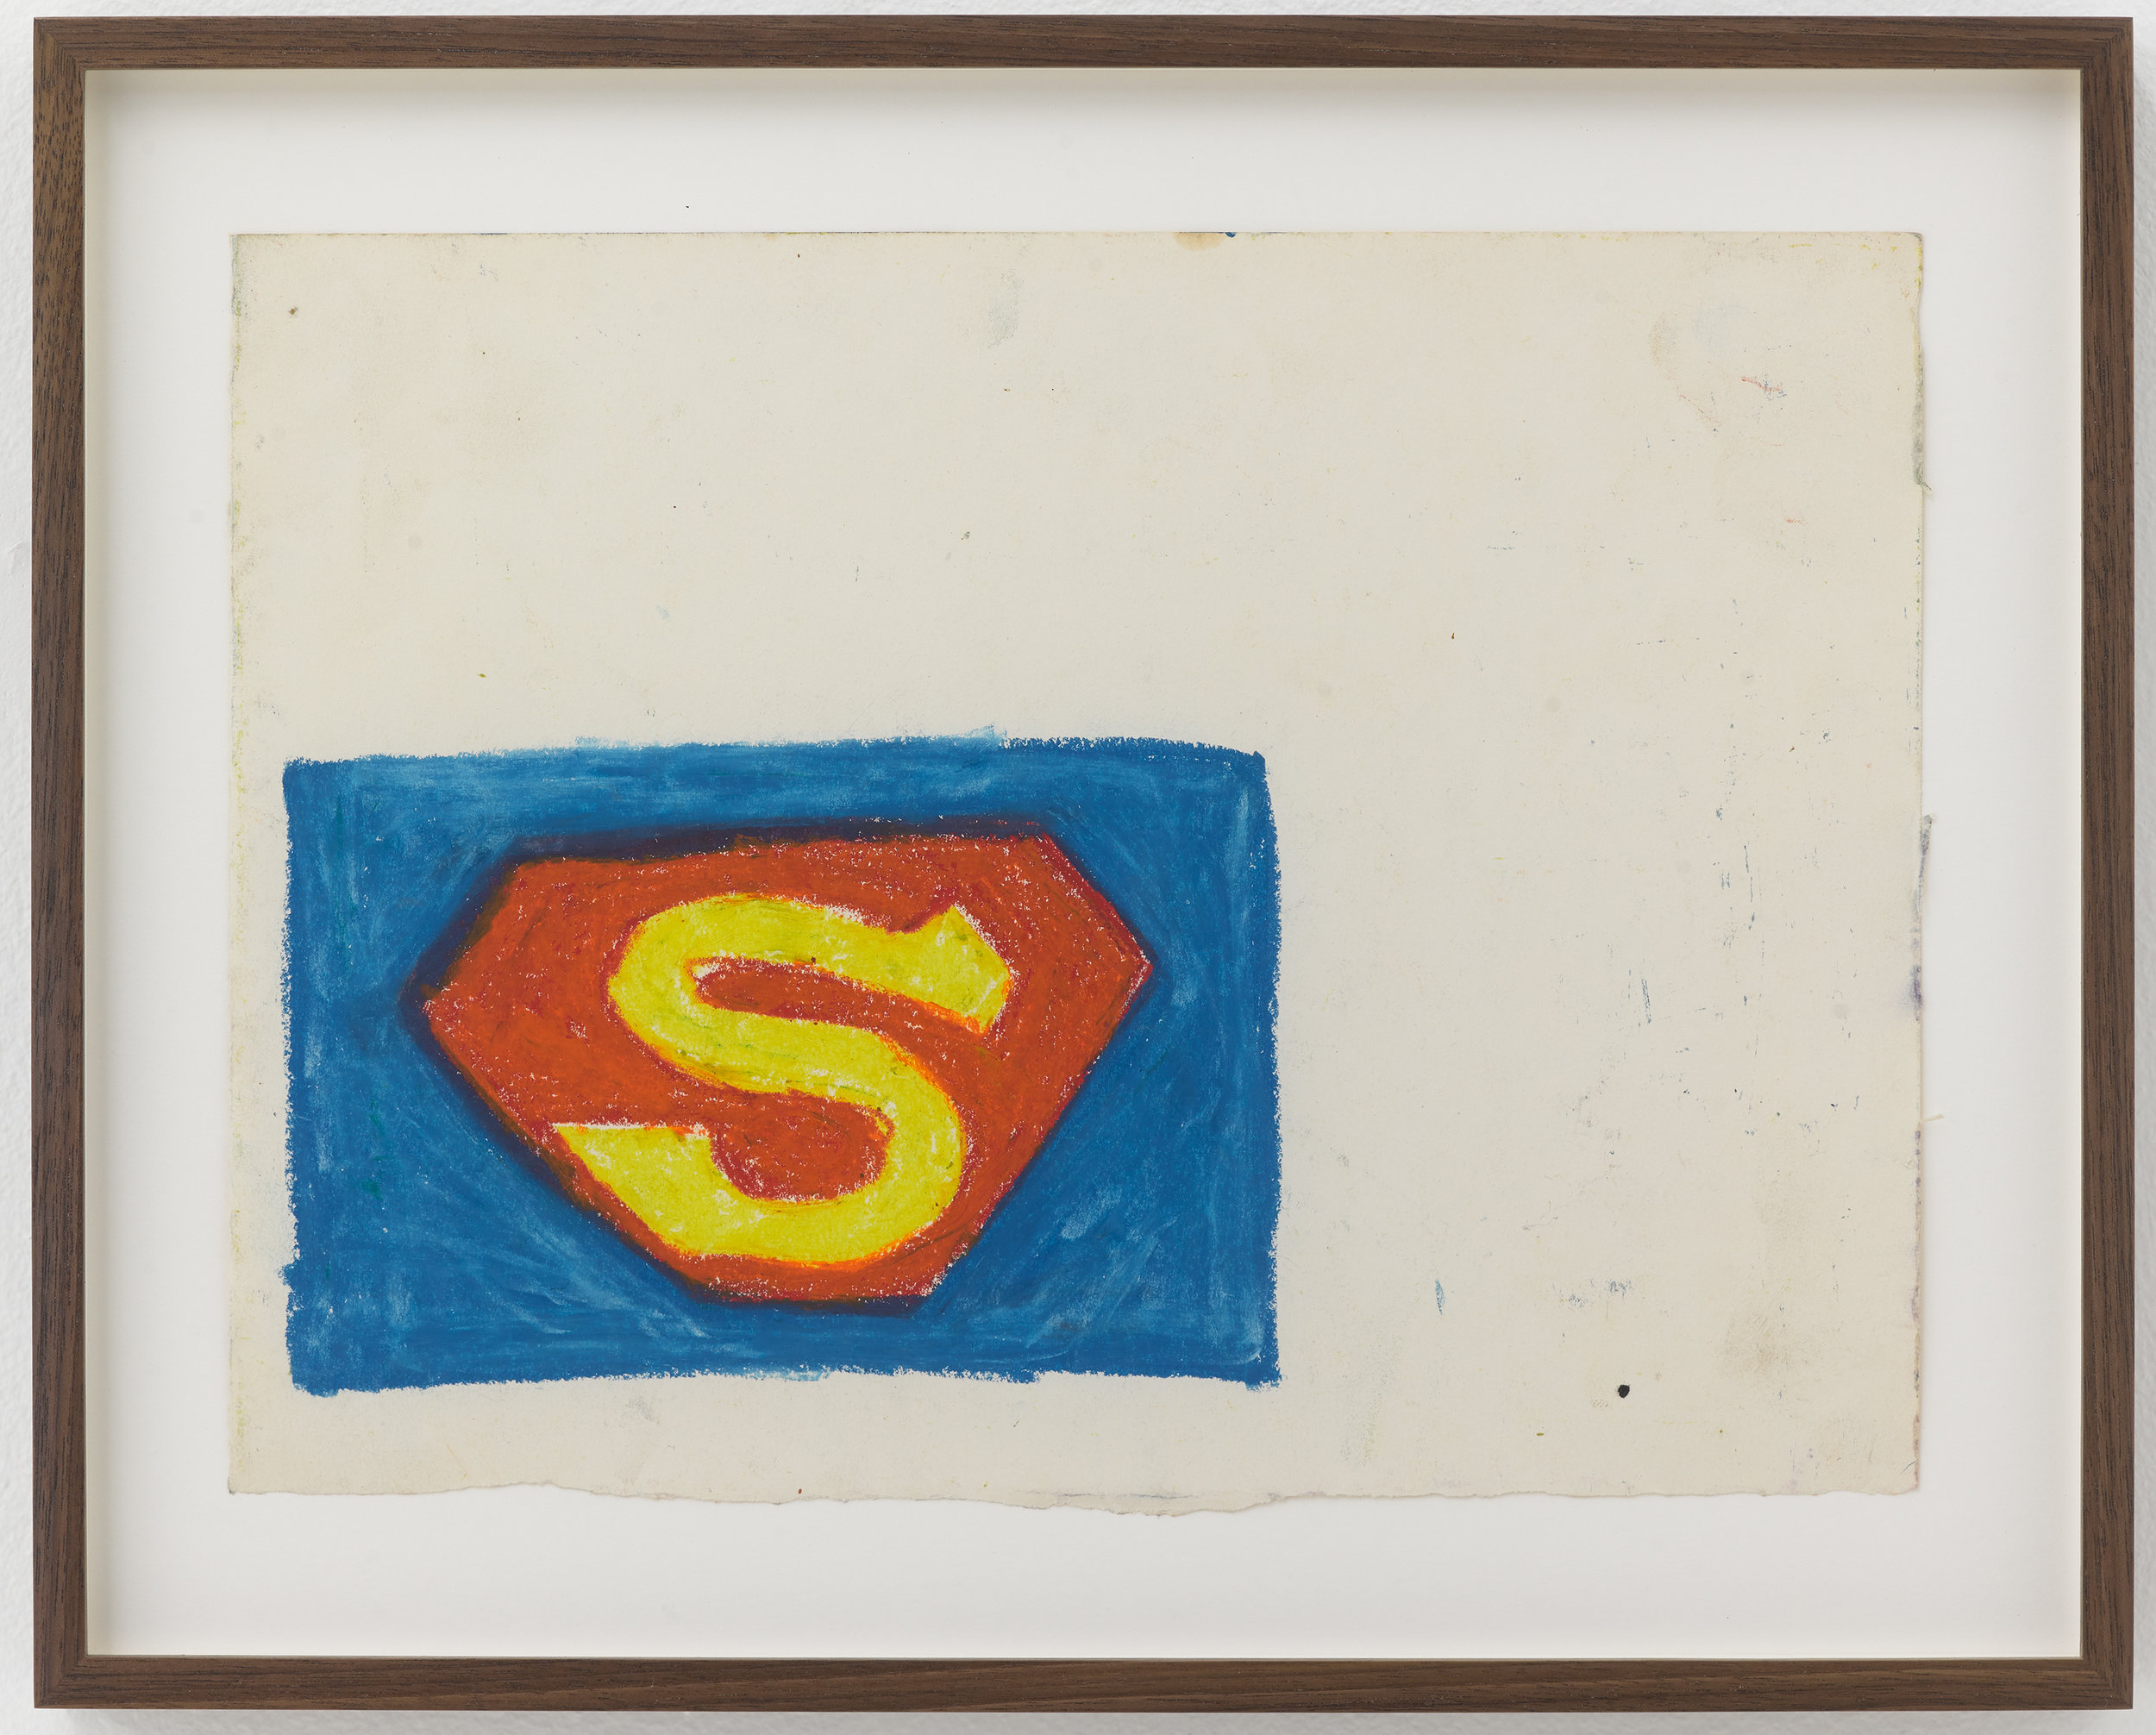 Stewart Hitch,  Superman Logo,  c. 1978, Oil stick on paper, 9 × 12 inches